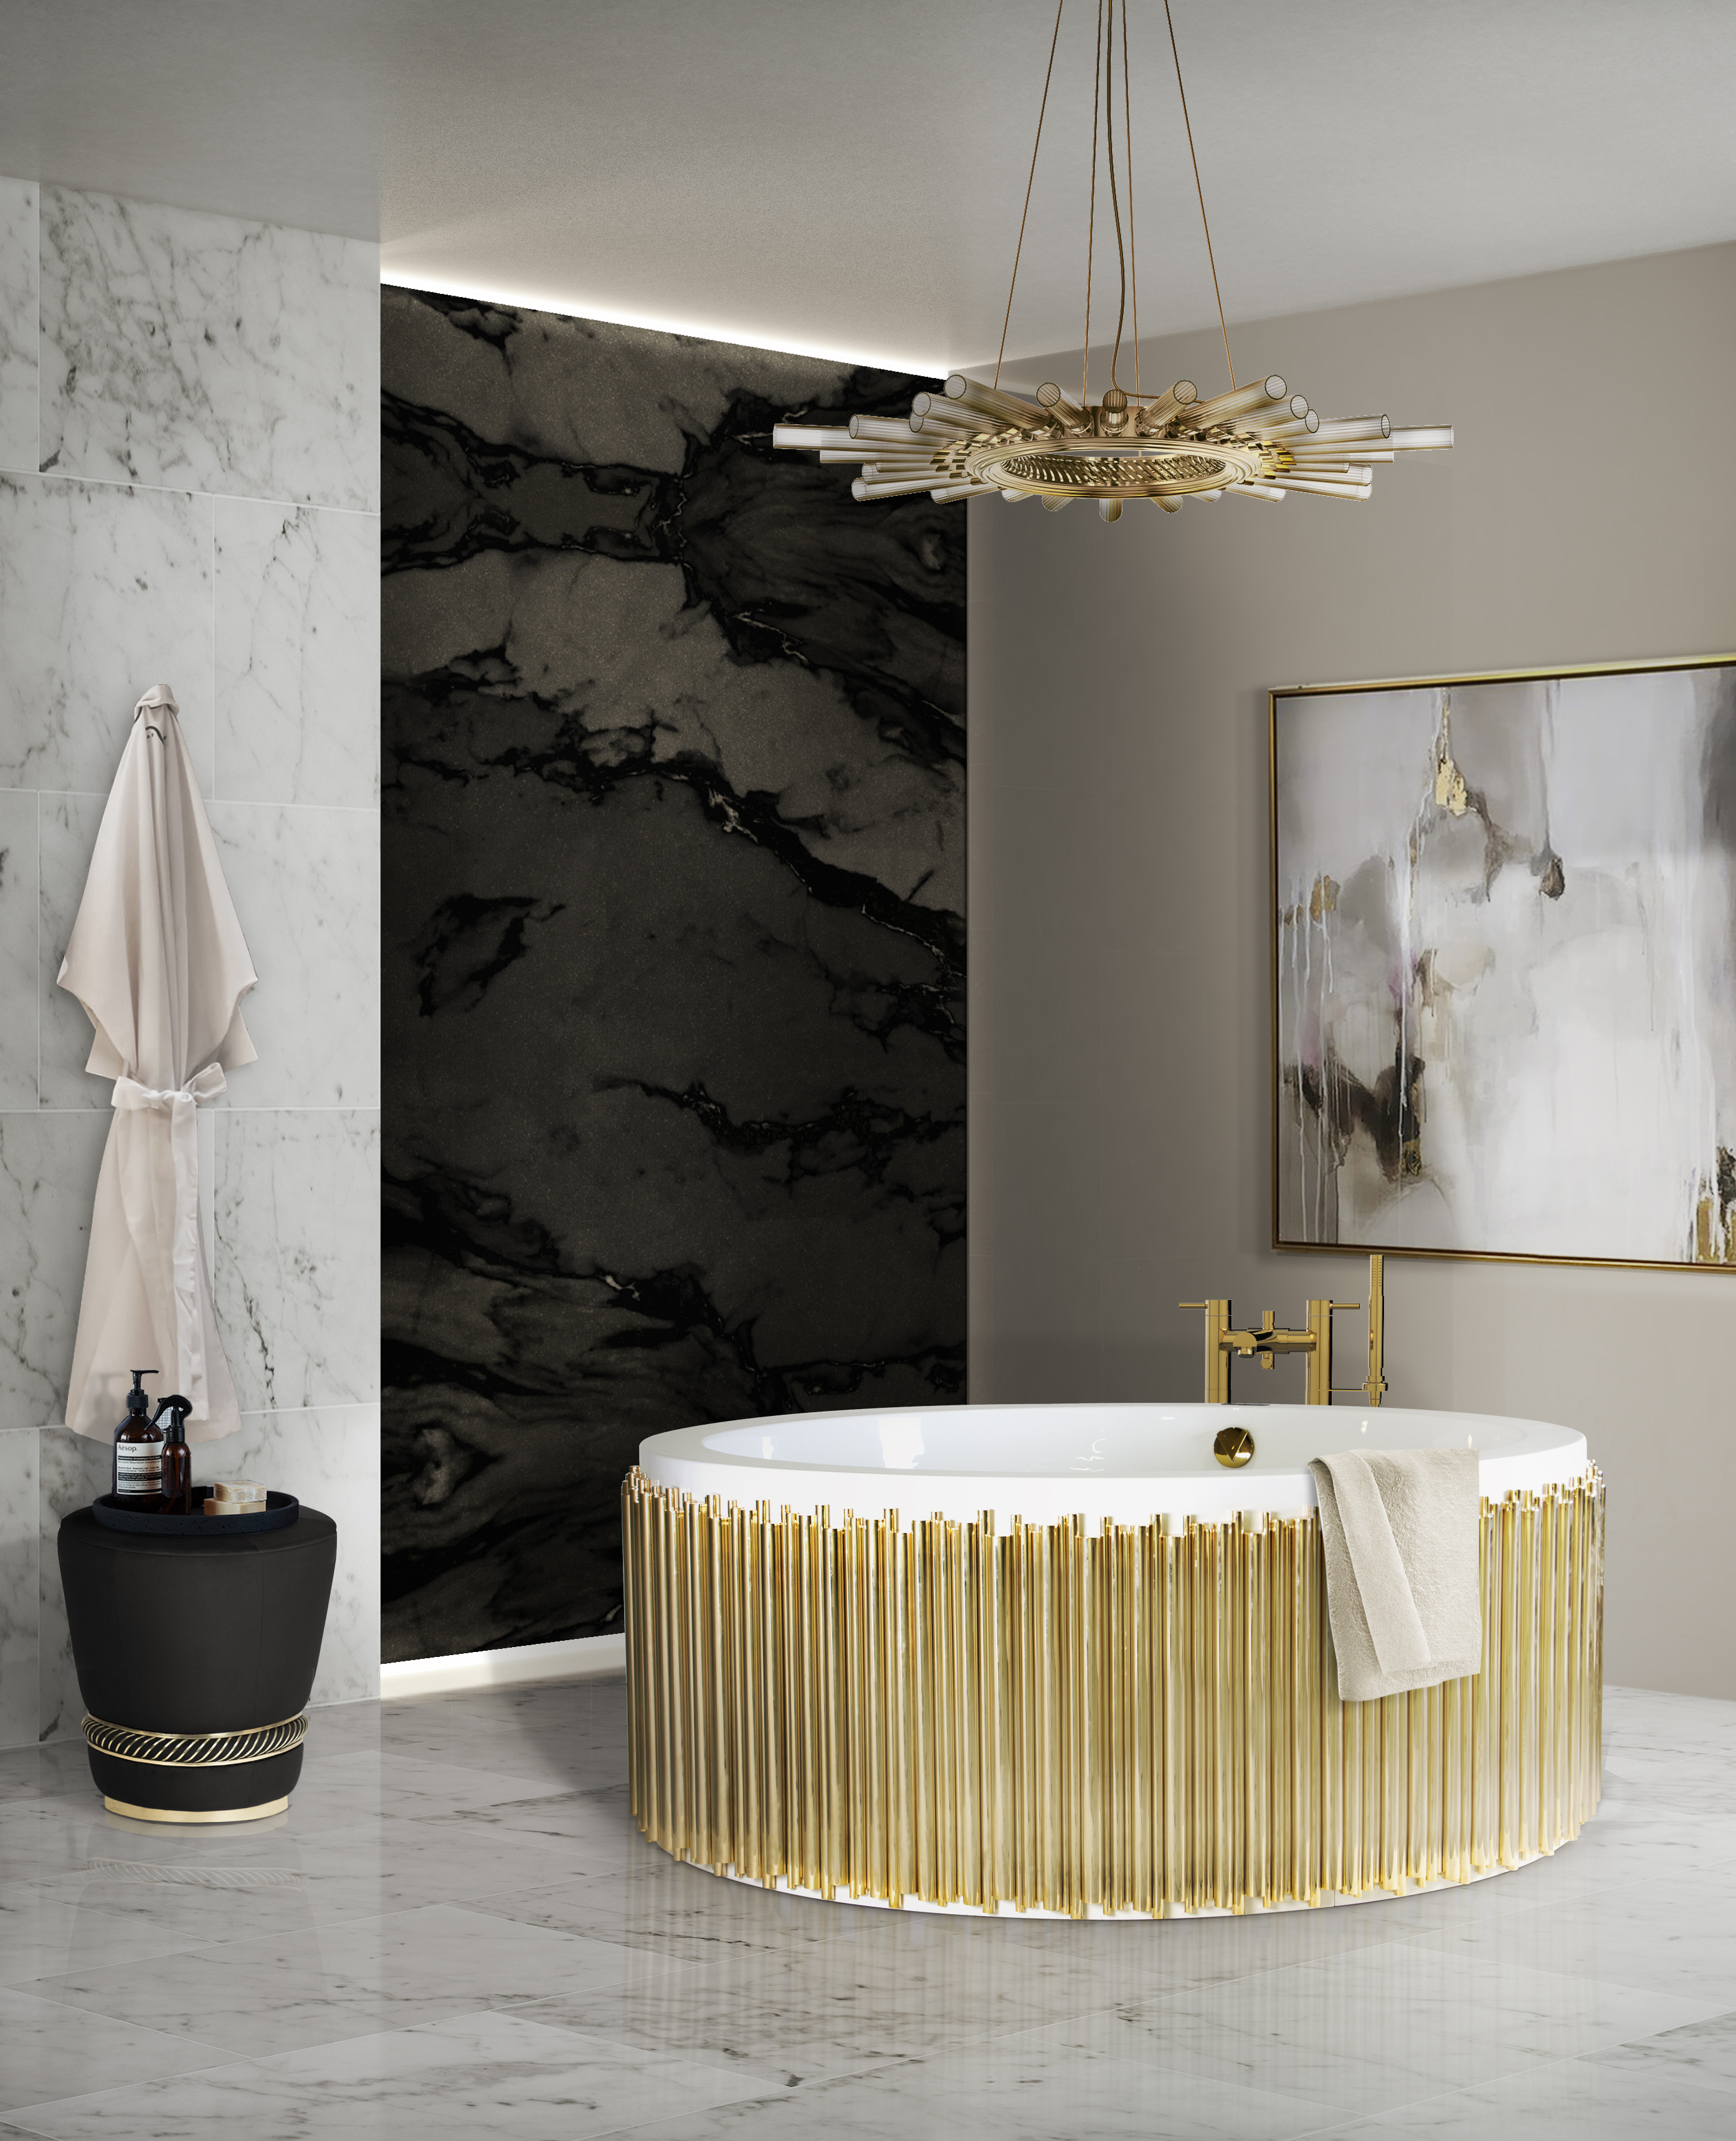 Maison Valentina Surfaces Maison Valentina Surfaces 27 symphony bathtub black paramount surface HR